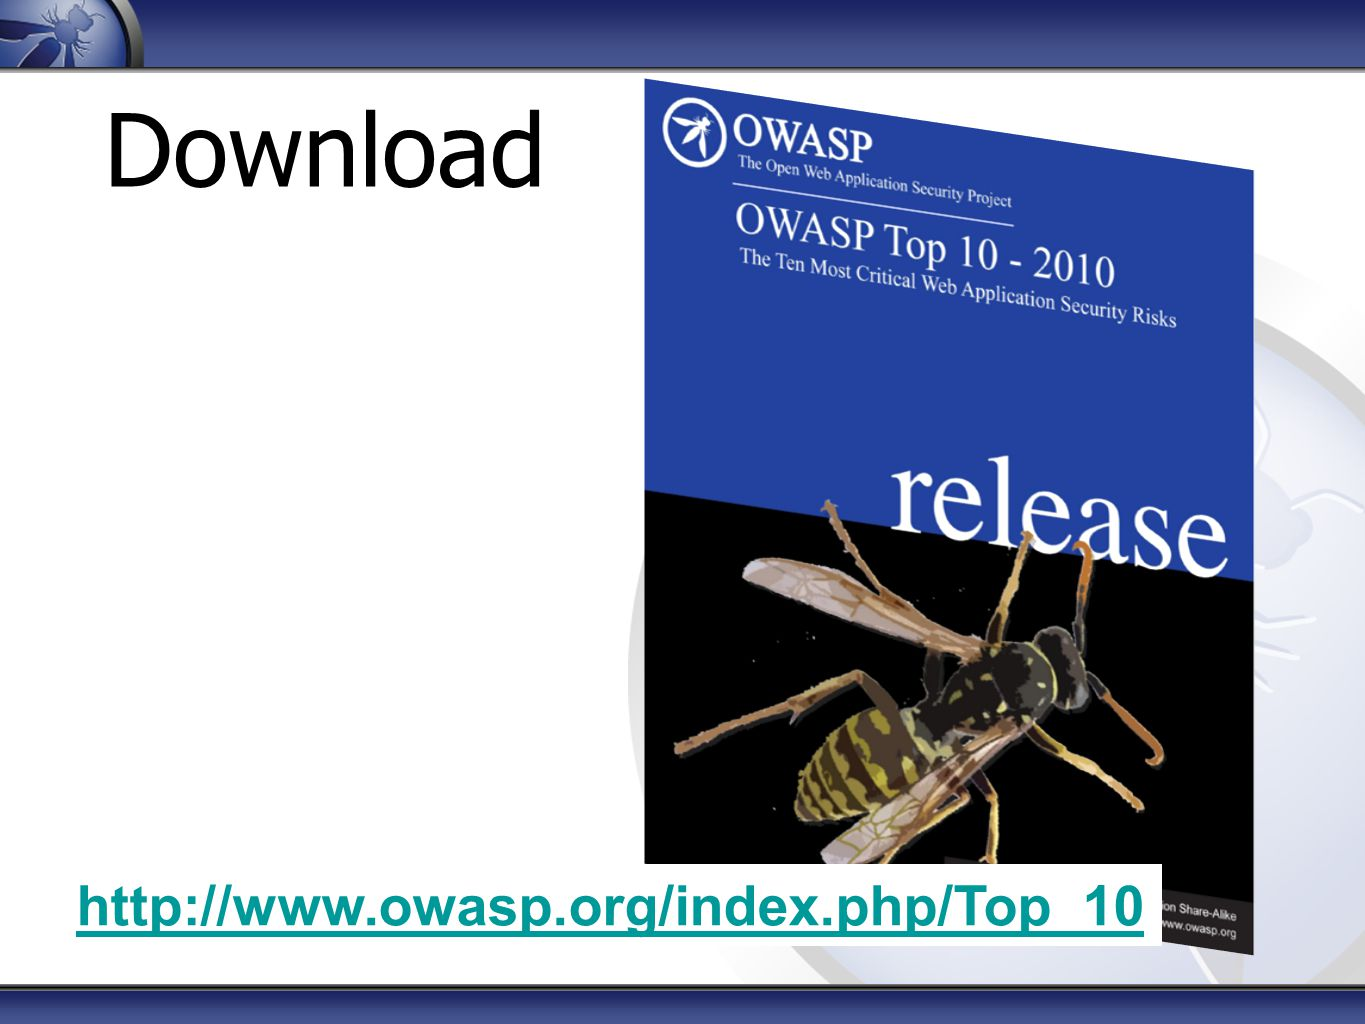 Download http://www.owasp.org/index.php/Top_10